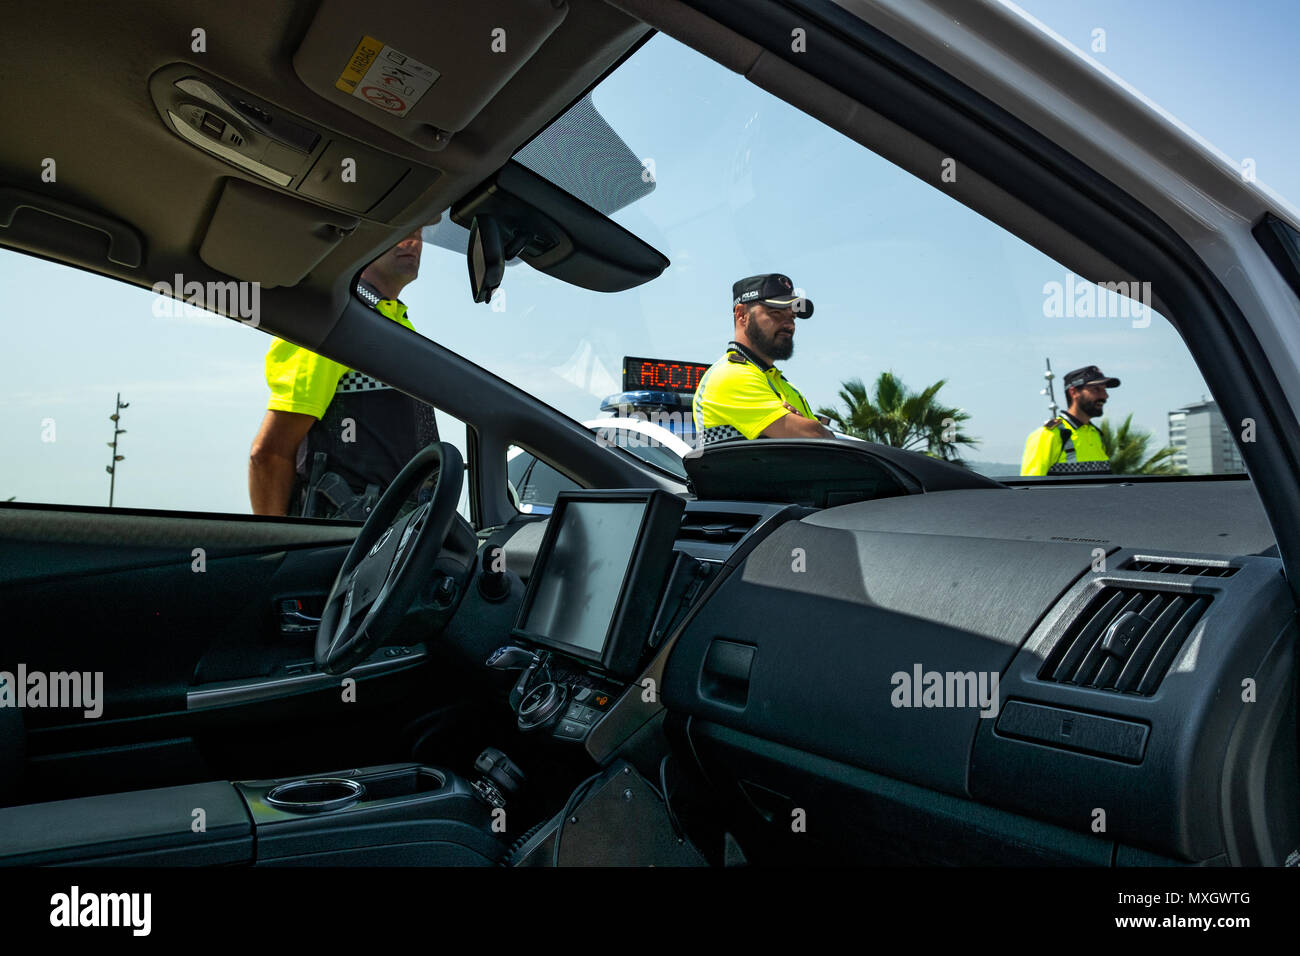 Barcelona Spain 4th June 2018 Image Of The Interior Of One Of The New Vehicles With The Data Information Control Computer With The Presence Of Mayor Ada Colau And The Security Commissioner